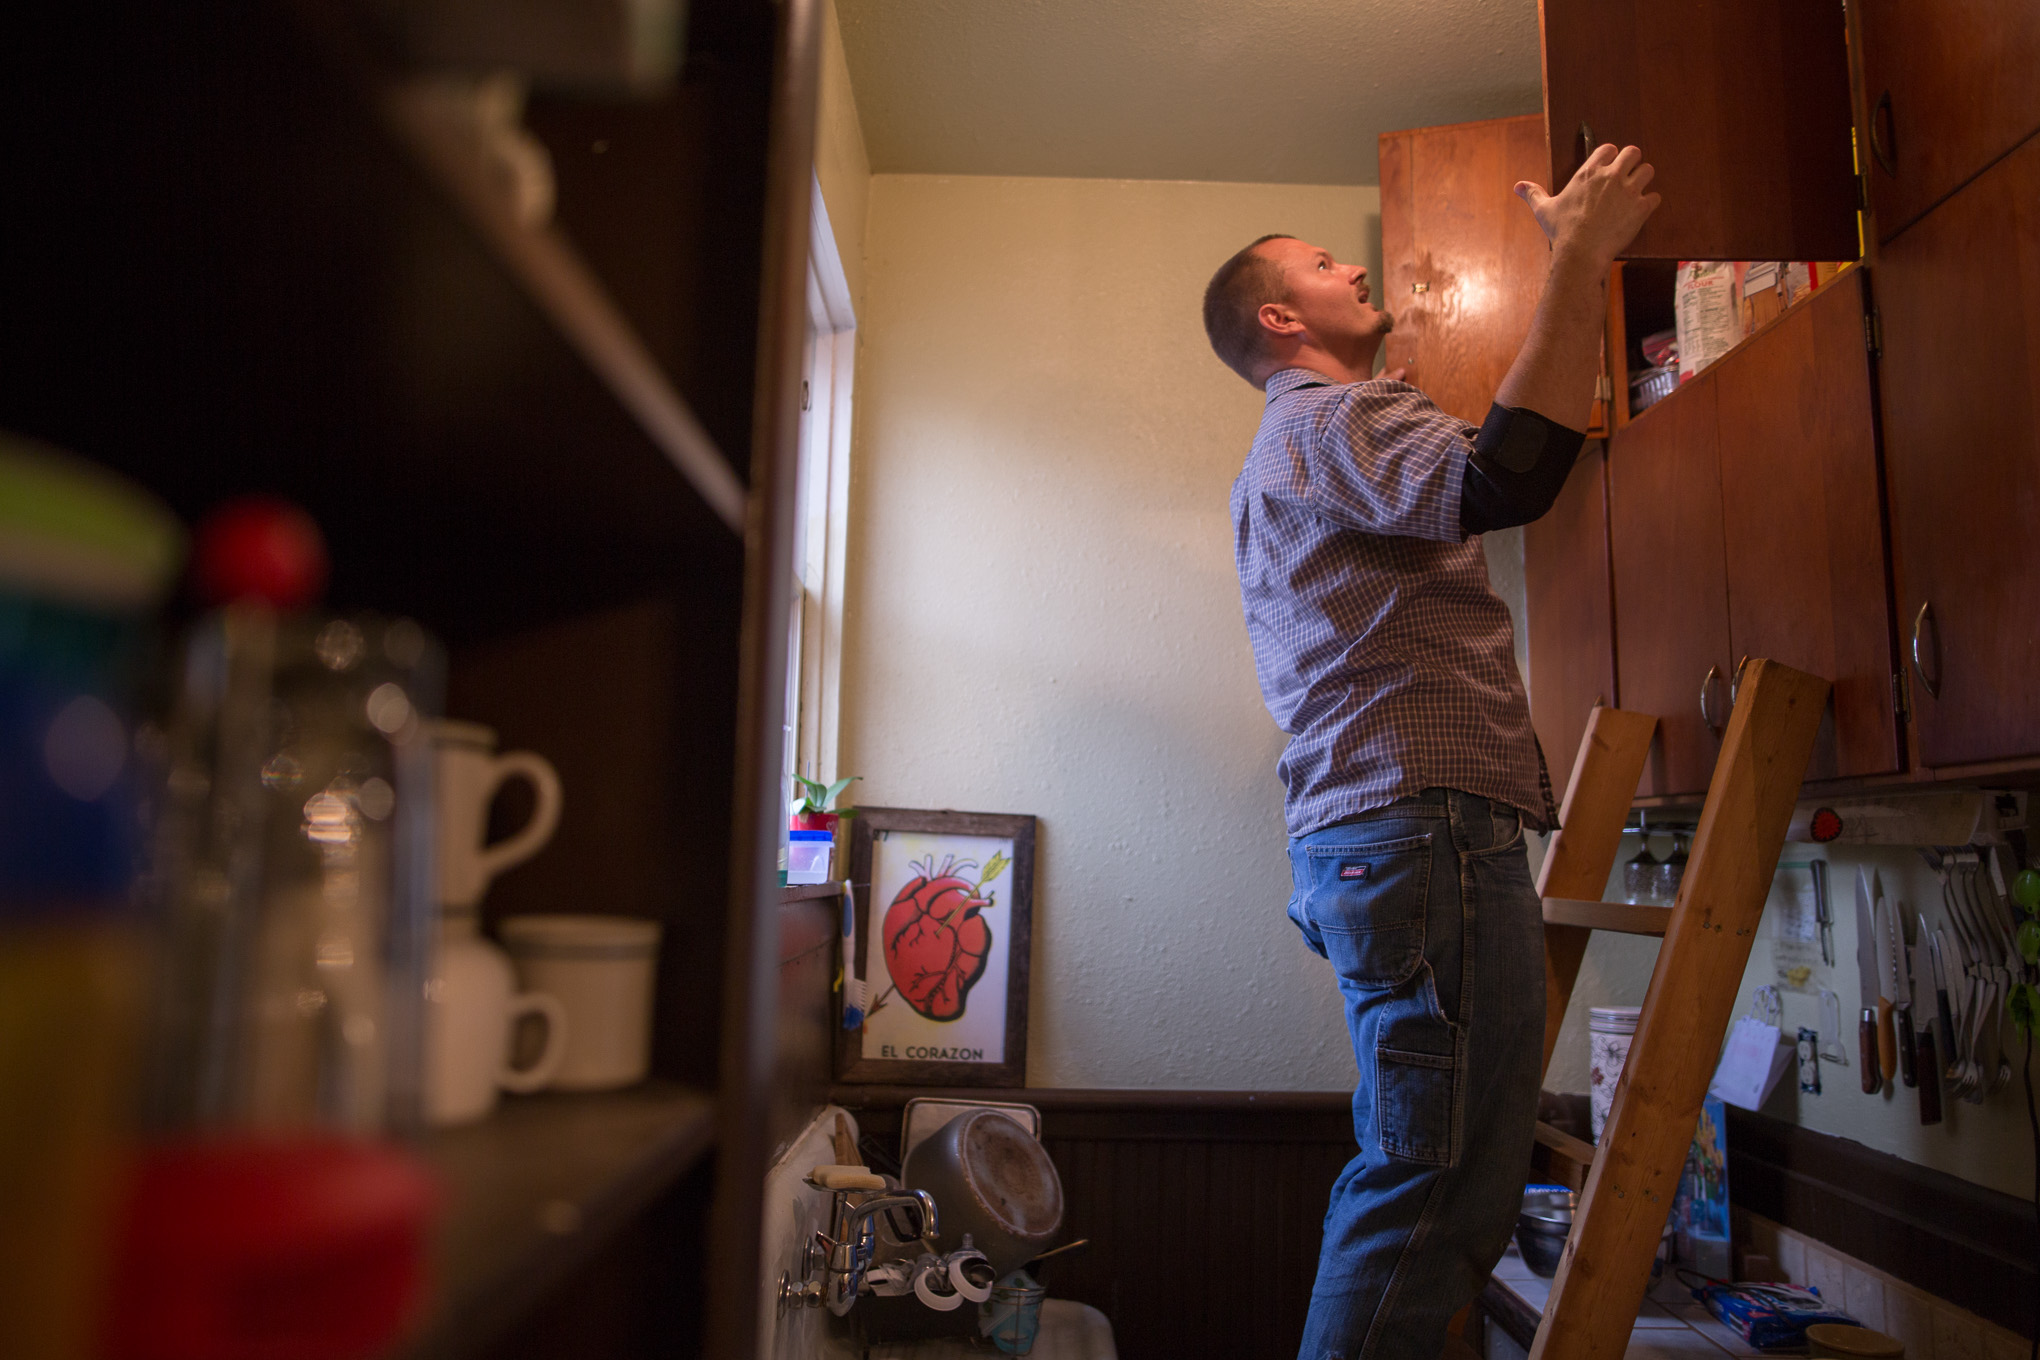 Michael uses his handmade ladder to reach the highly mounted cabinetry.